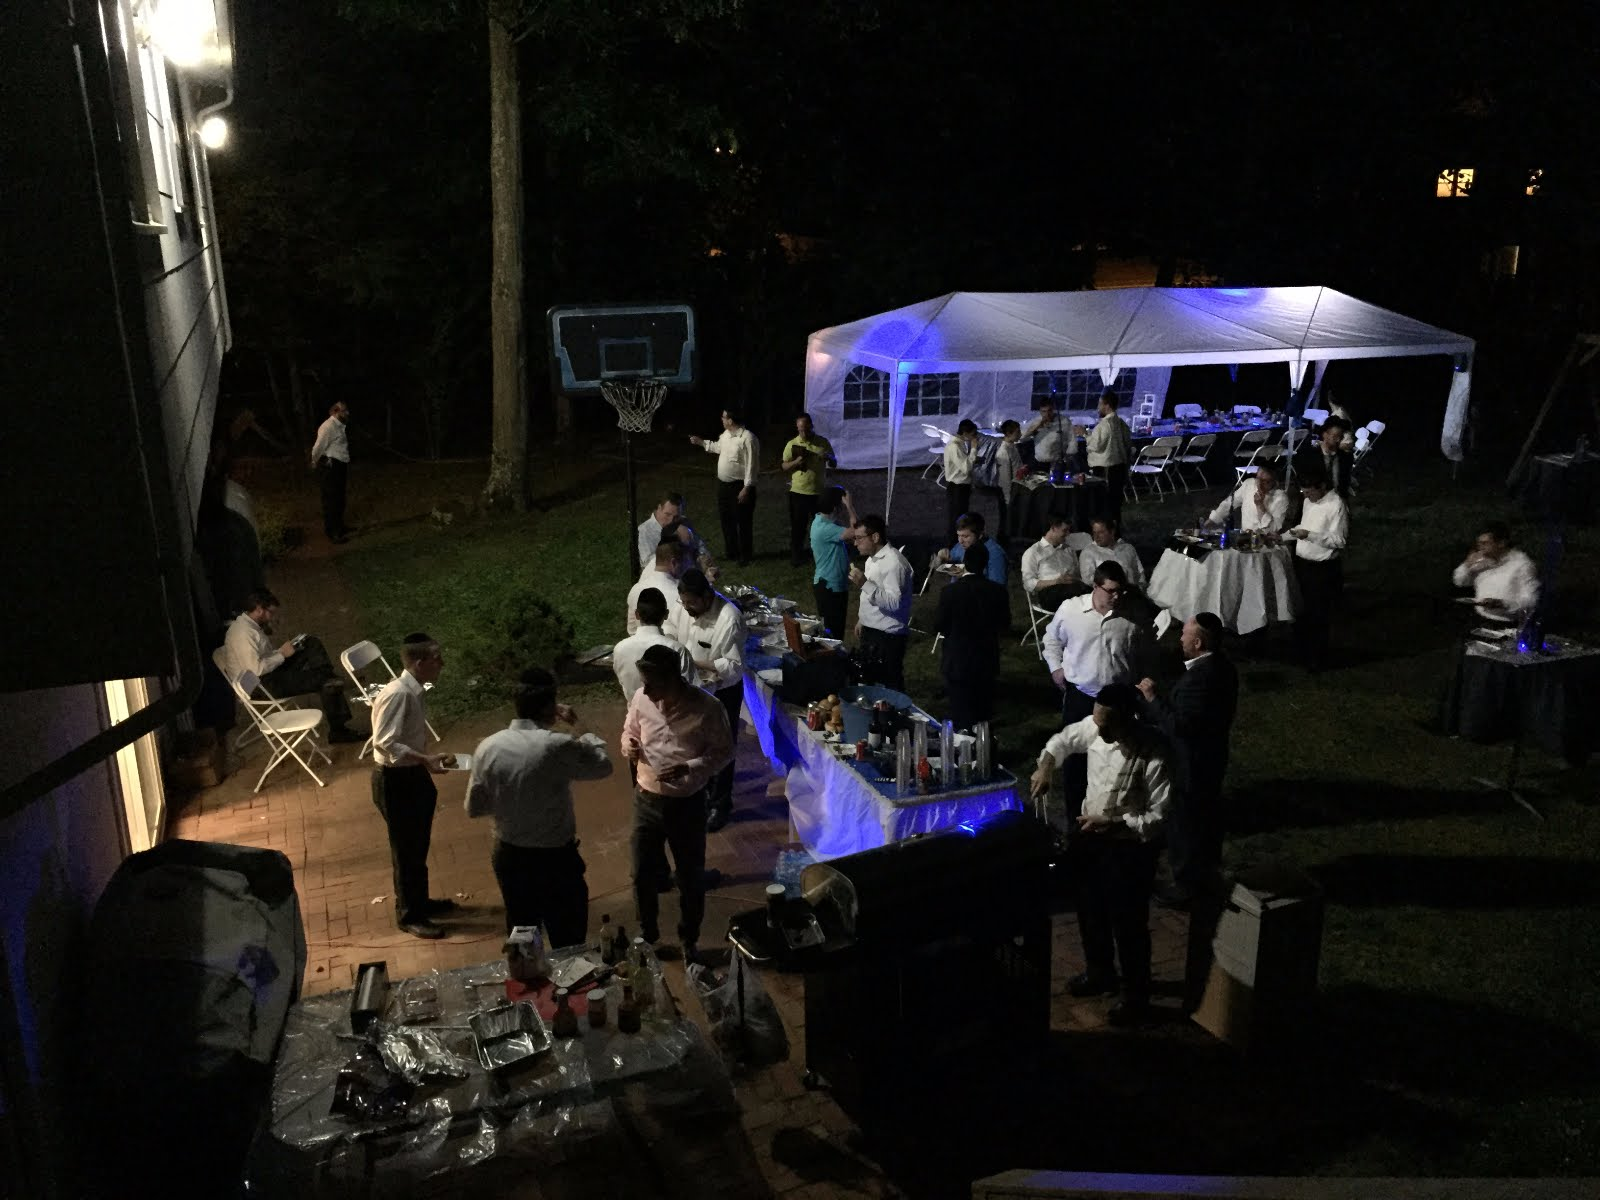 Siyum - BackYard Event